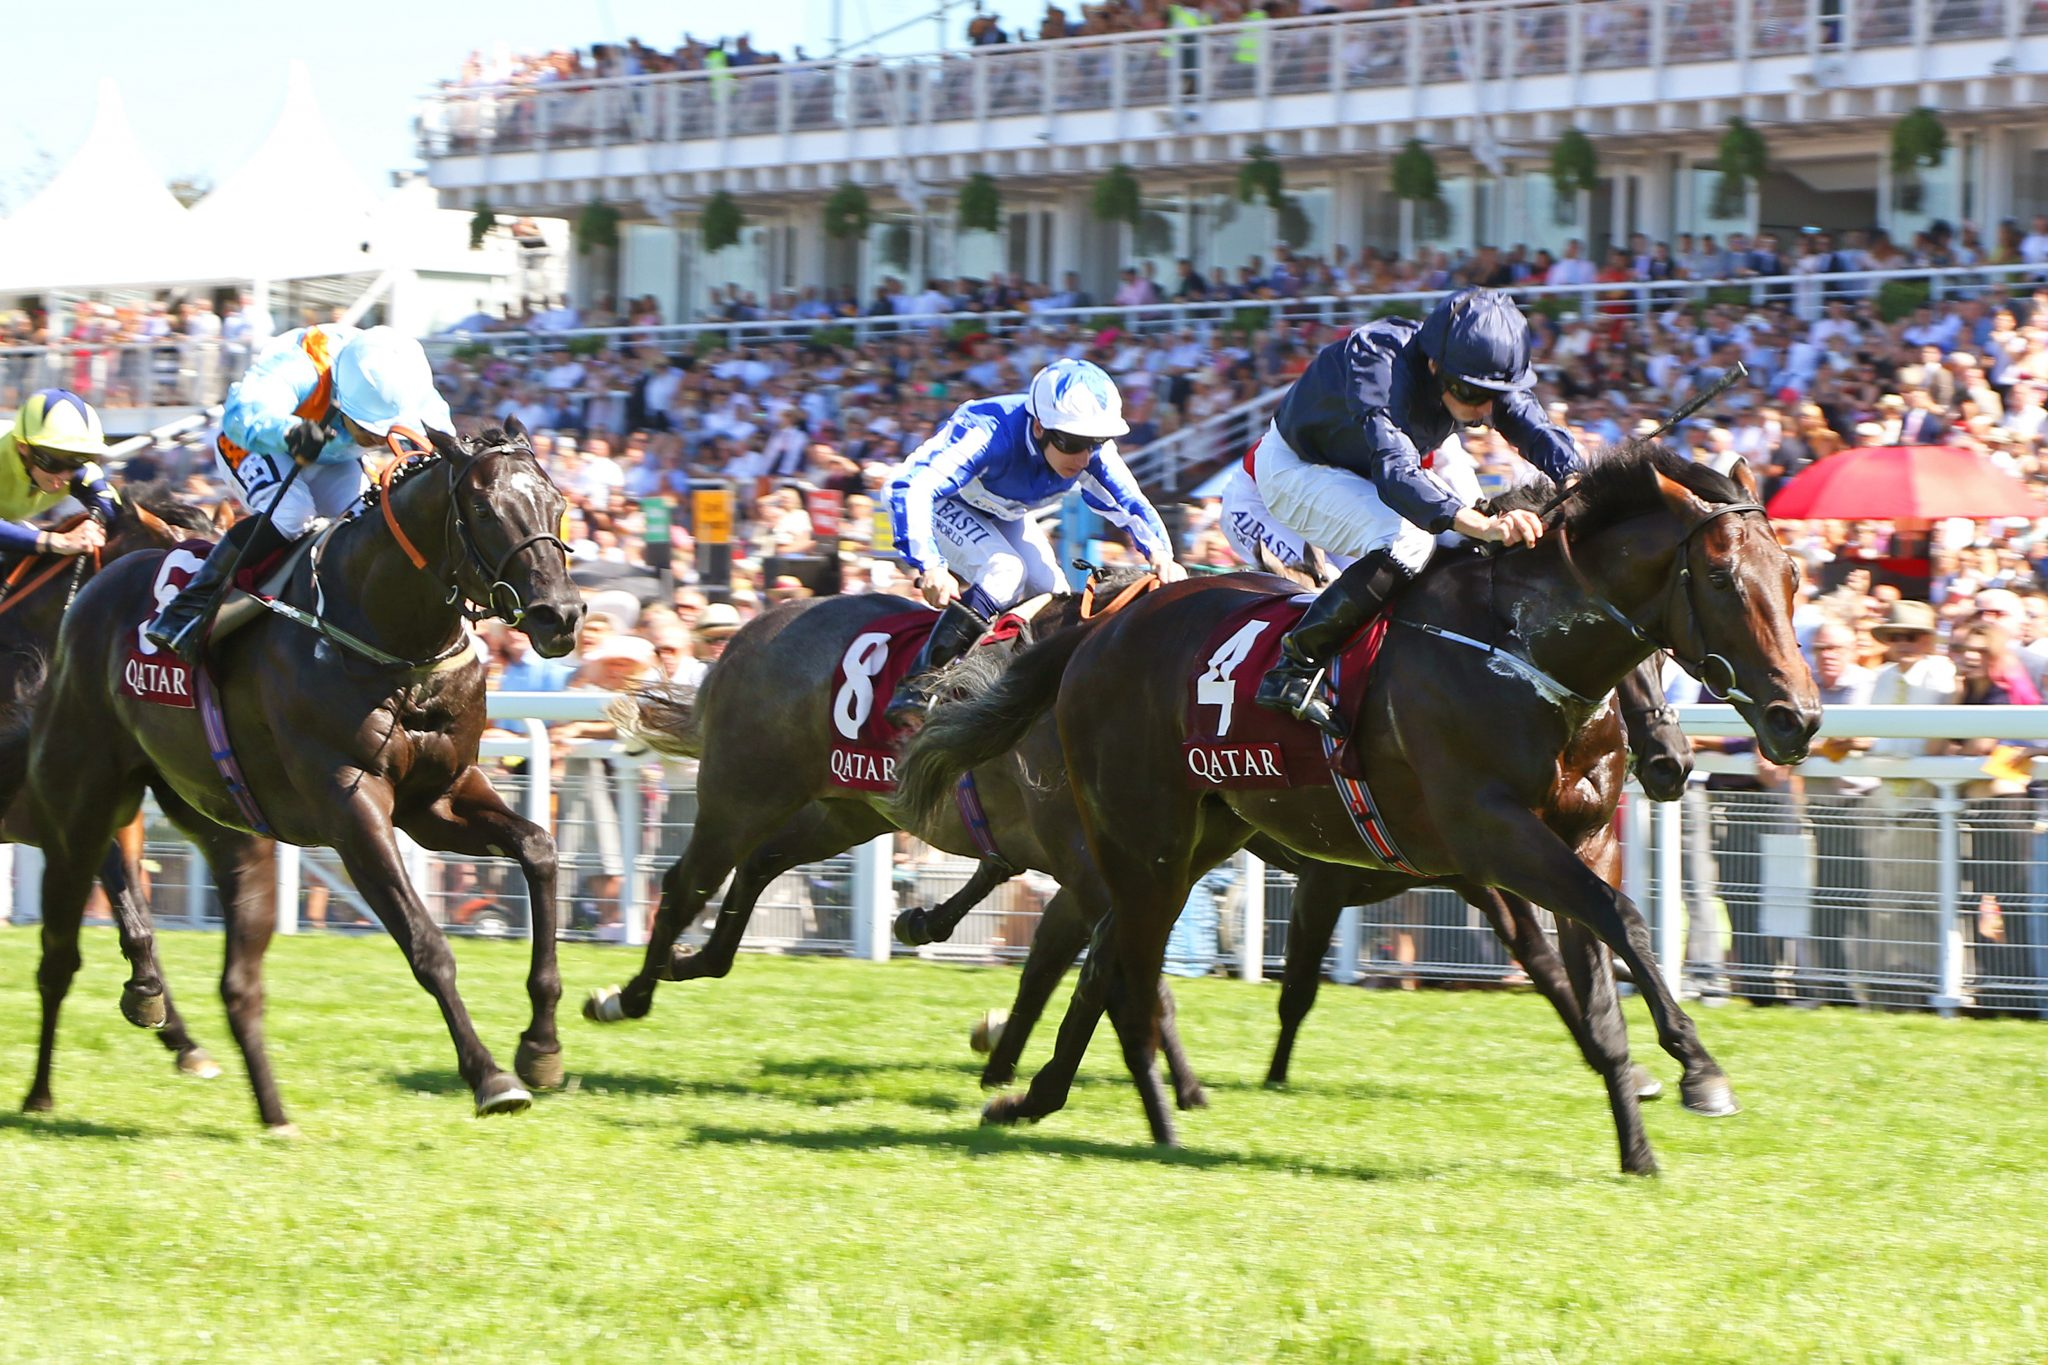 NEW STALLION BY NO NAY NEVER JOINS THE ROSTER AT HIGHCLERE STUD